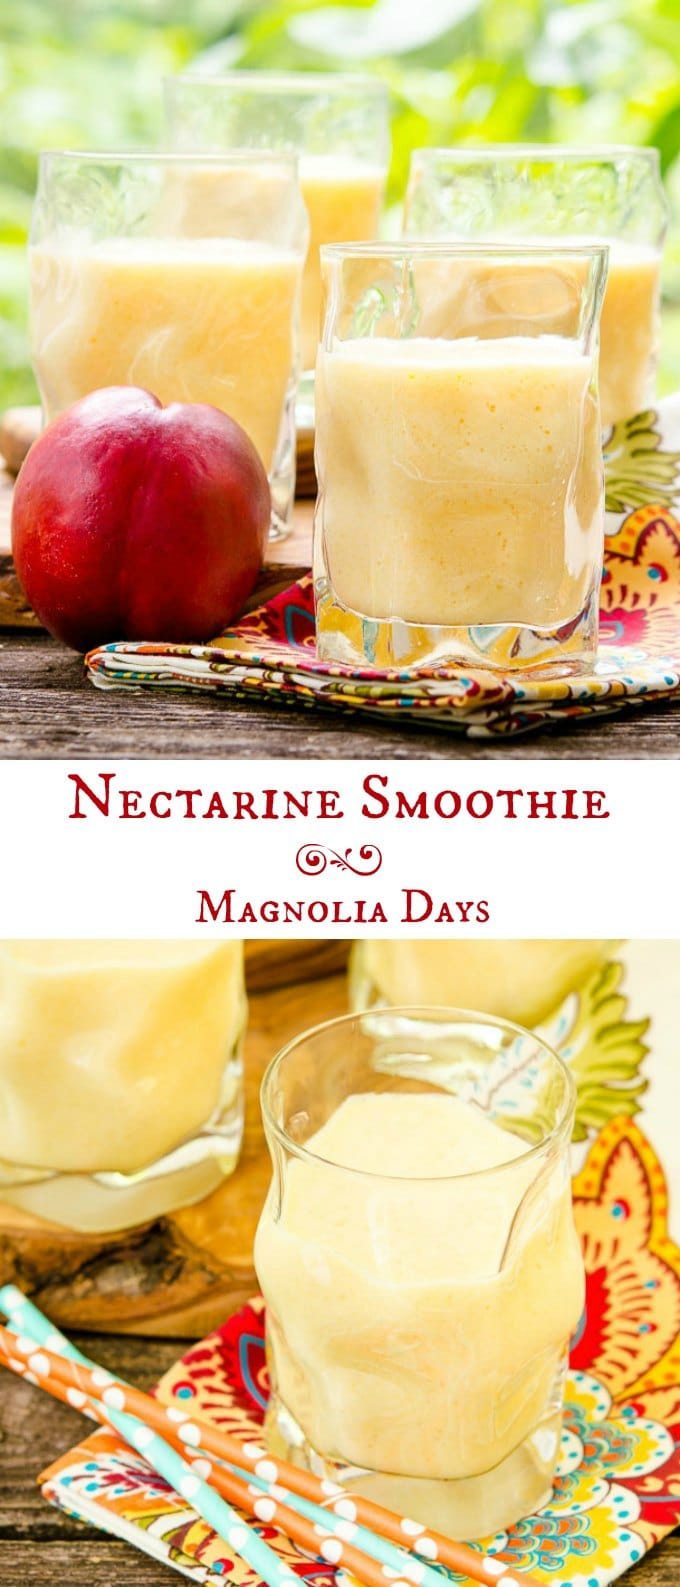 Nectarine Smoothie made with fresh fruit, yogurt, milk, and honey. It's cool, creamy, and has a delicate flavor.